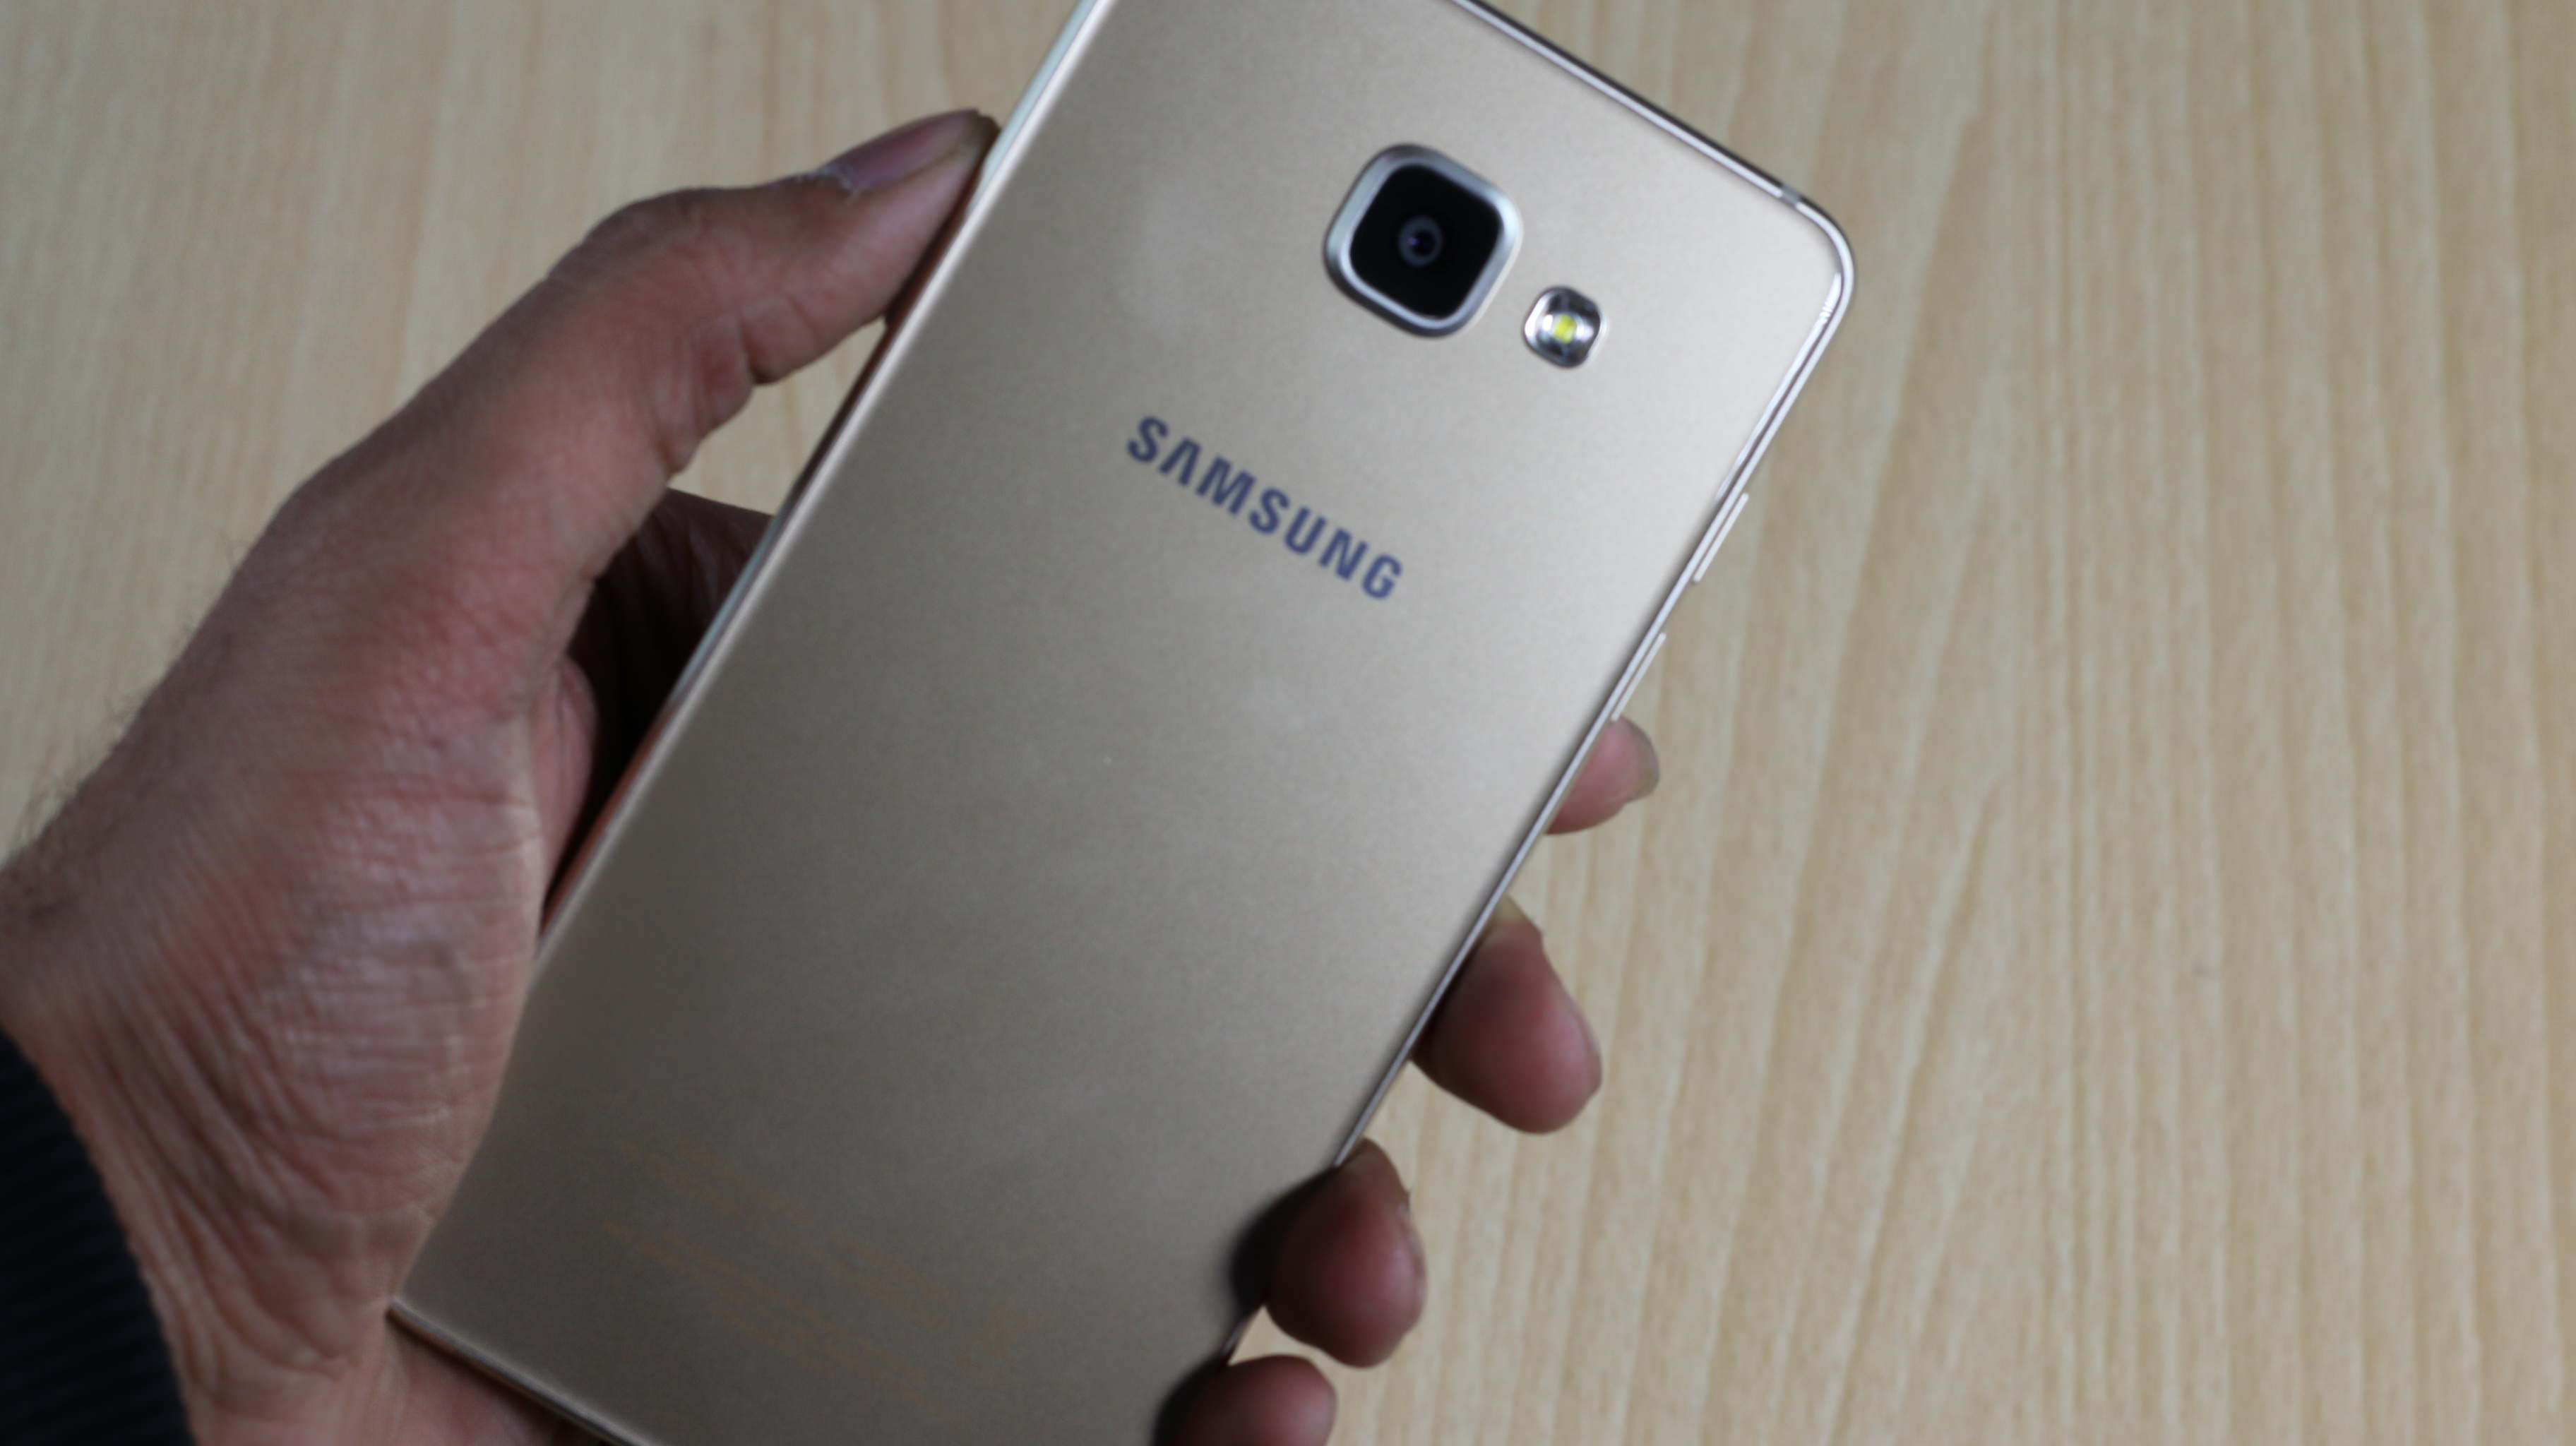 Samsung Galaxy A5, A7 (2016) Get Android 7 0 Nougat Update